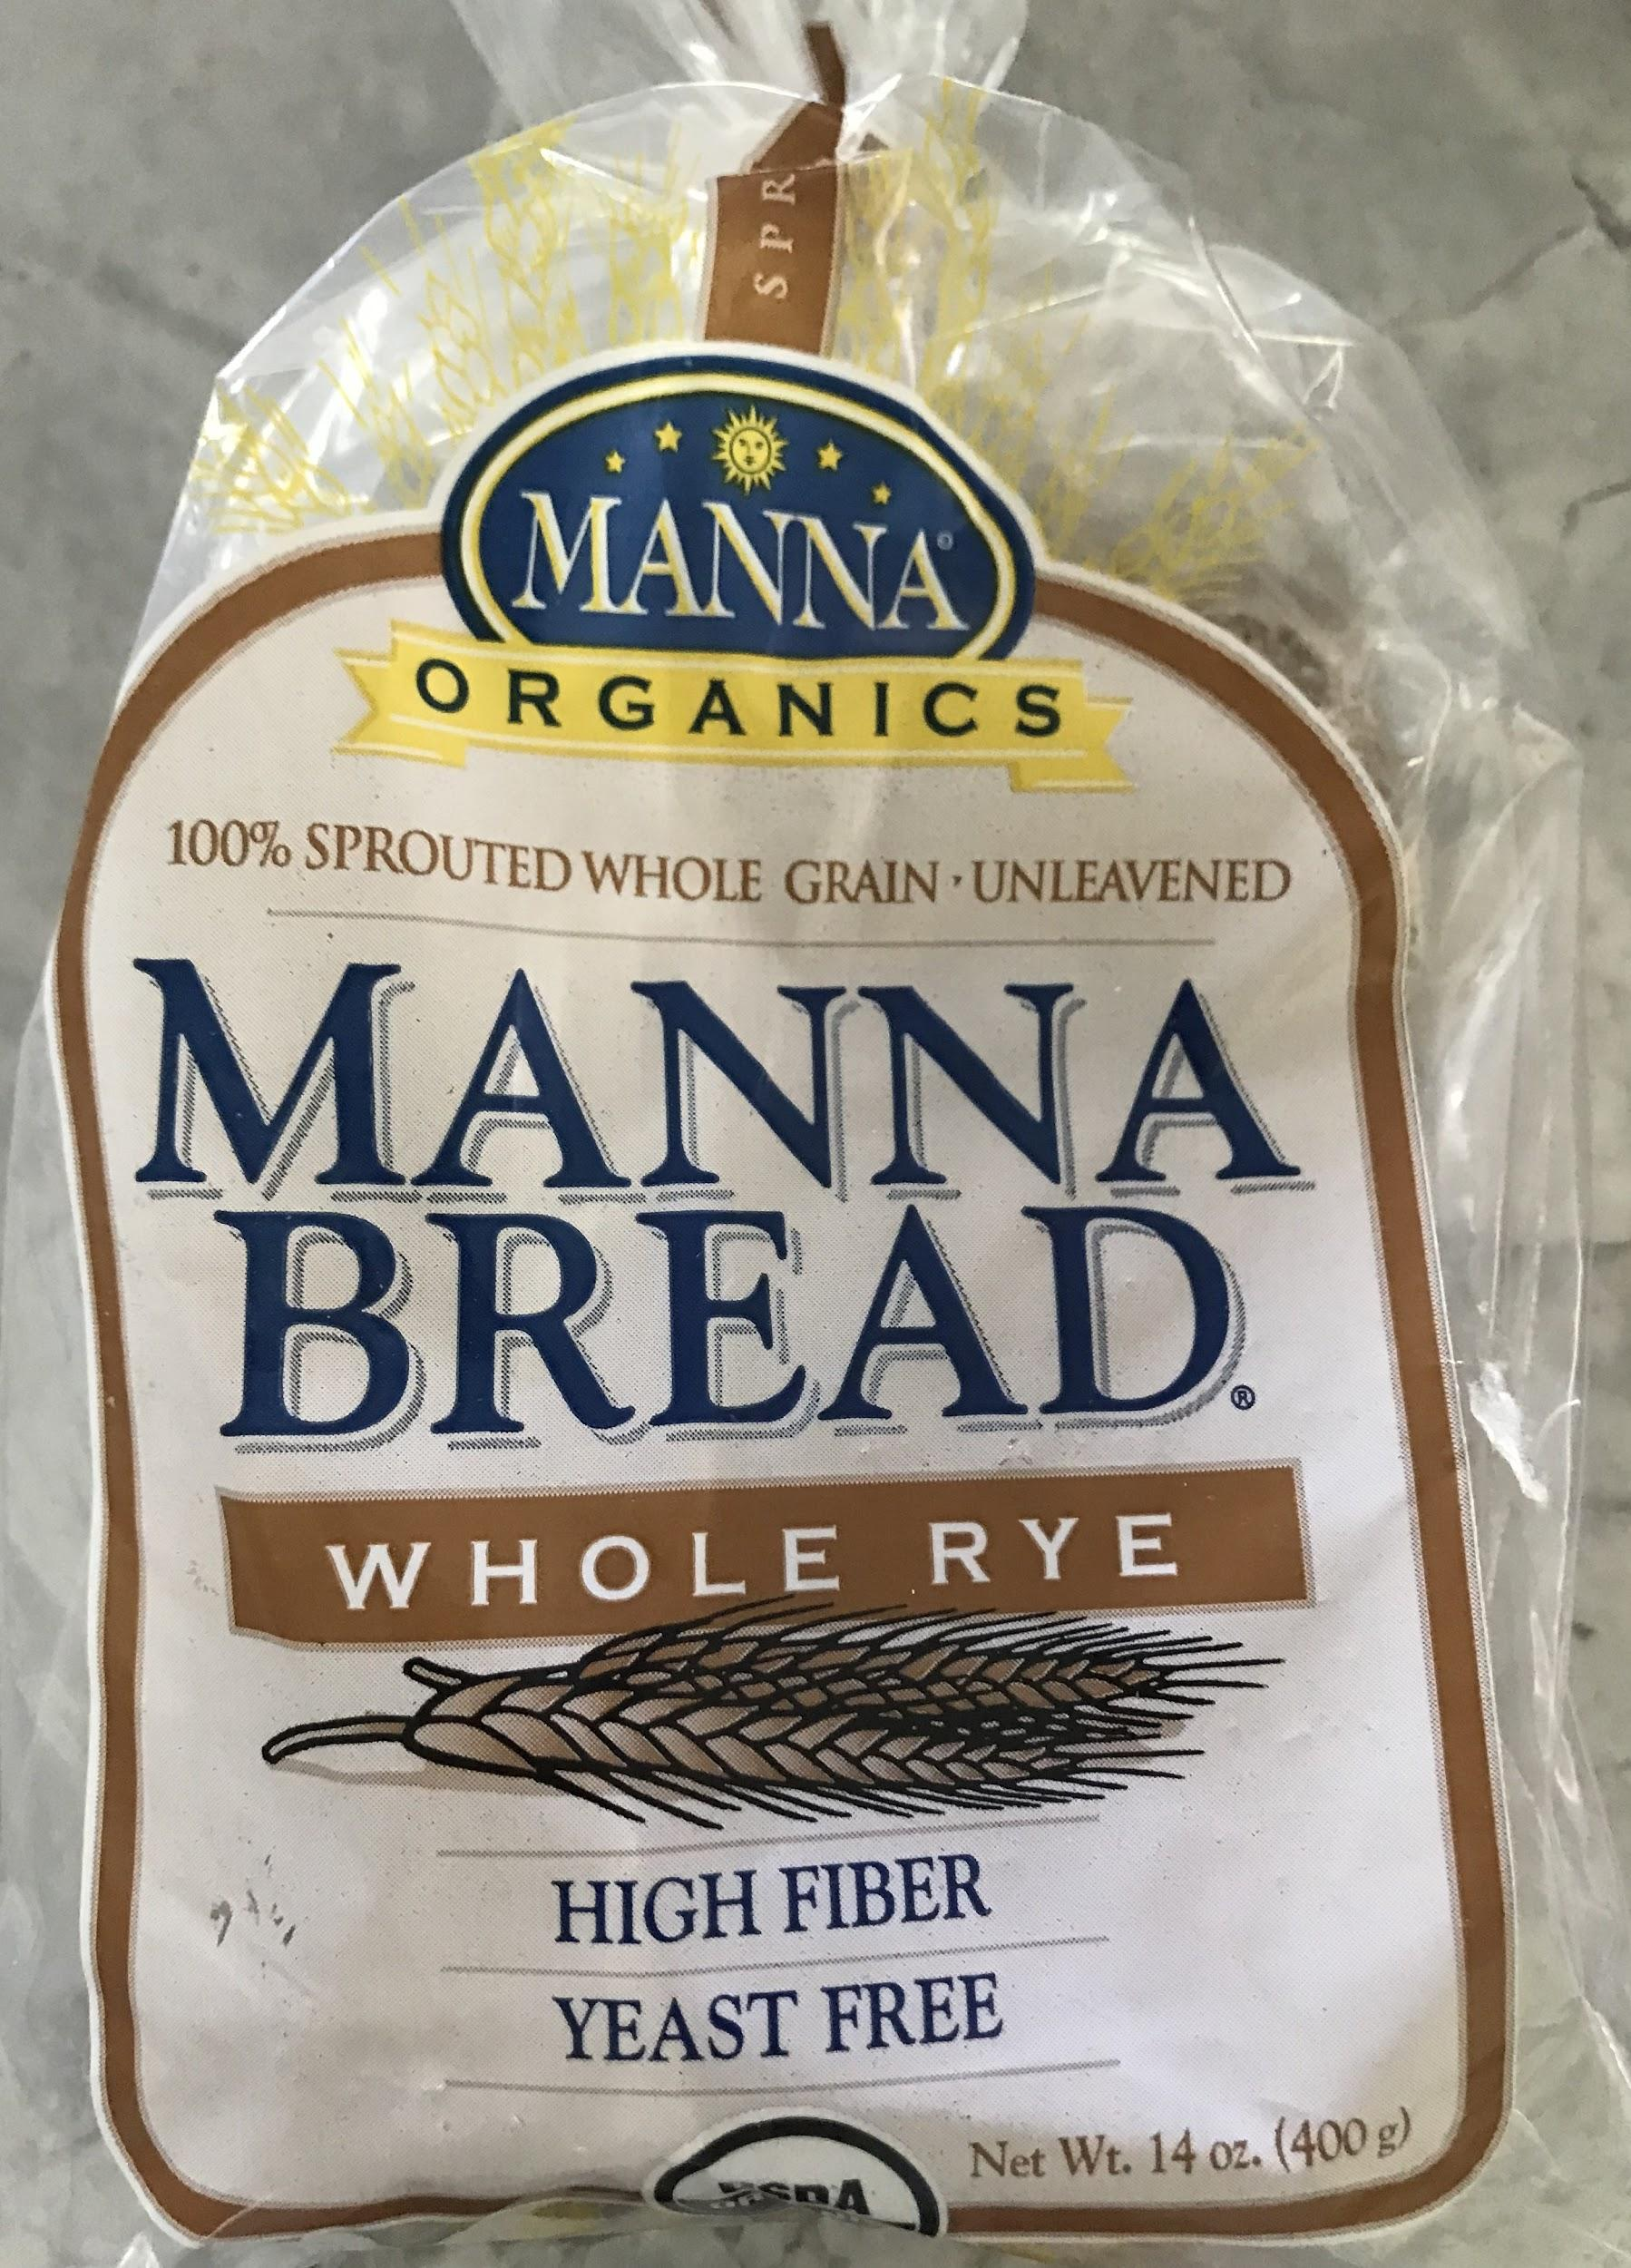 A picture of 100% sprouted whole grain-unleavened Manna Bread.